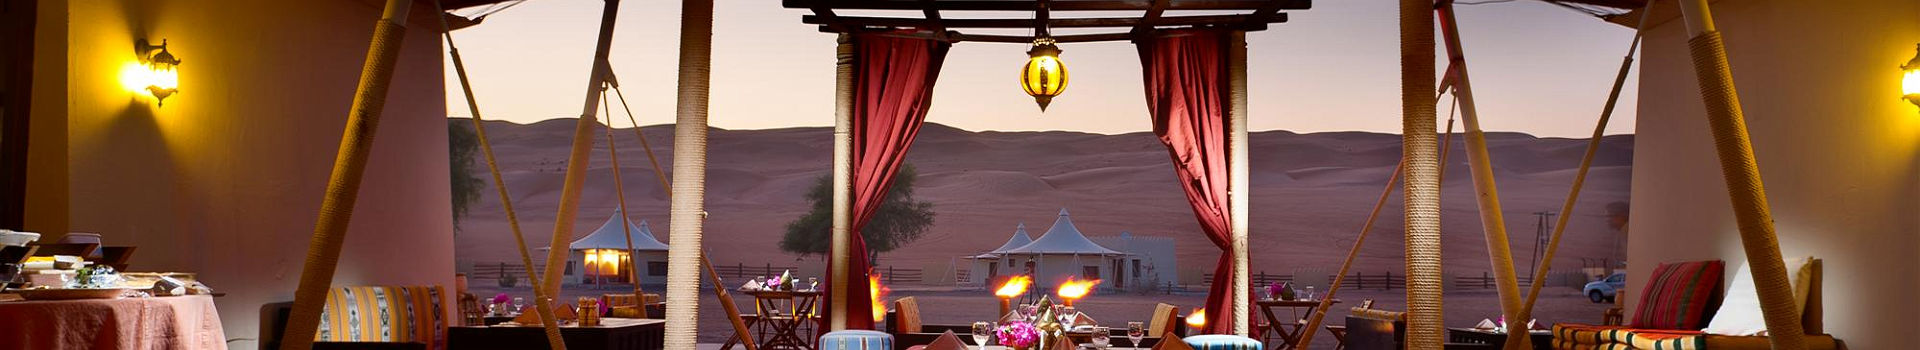 Desert Nights Camp - Oman